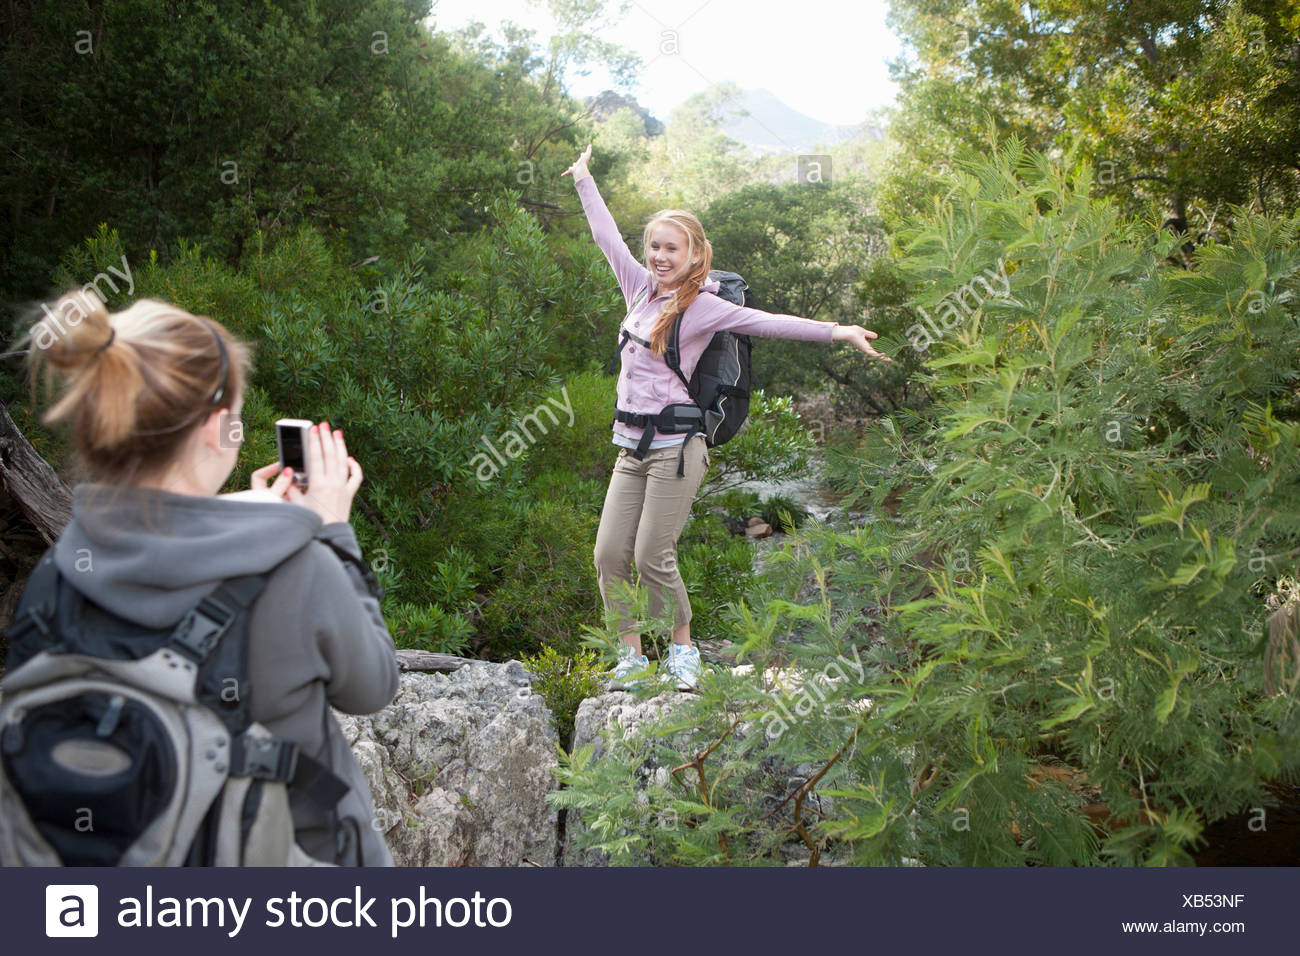 Girl hikers photographing each other on rock - Stock Image